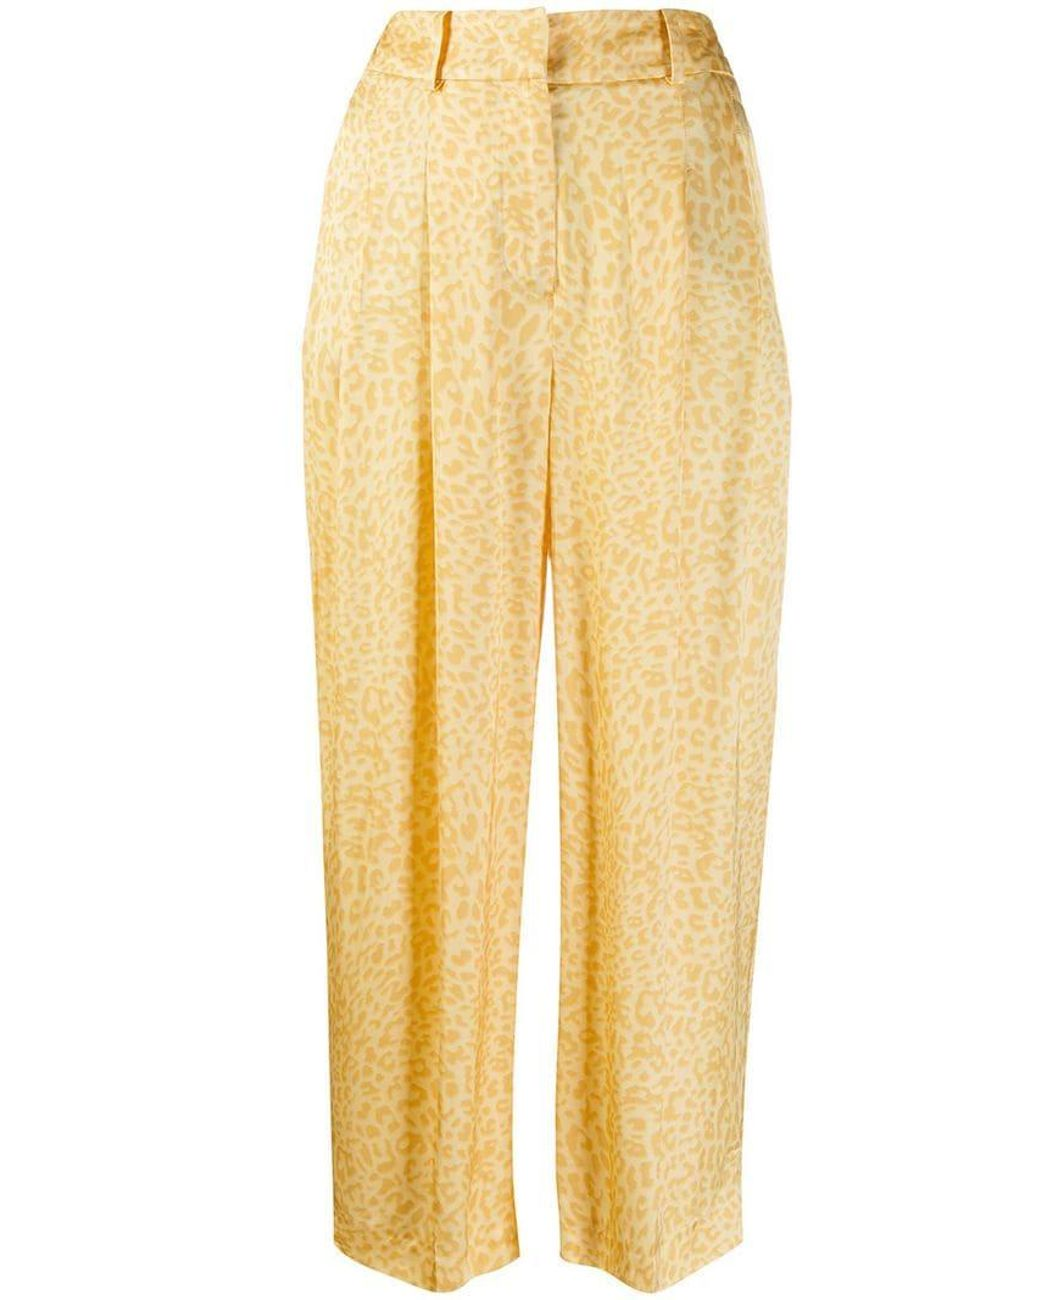 6e25dc353e56 Lyst - PT01 Leopard-print Trousers in Yellow